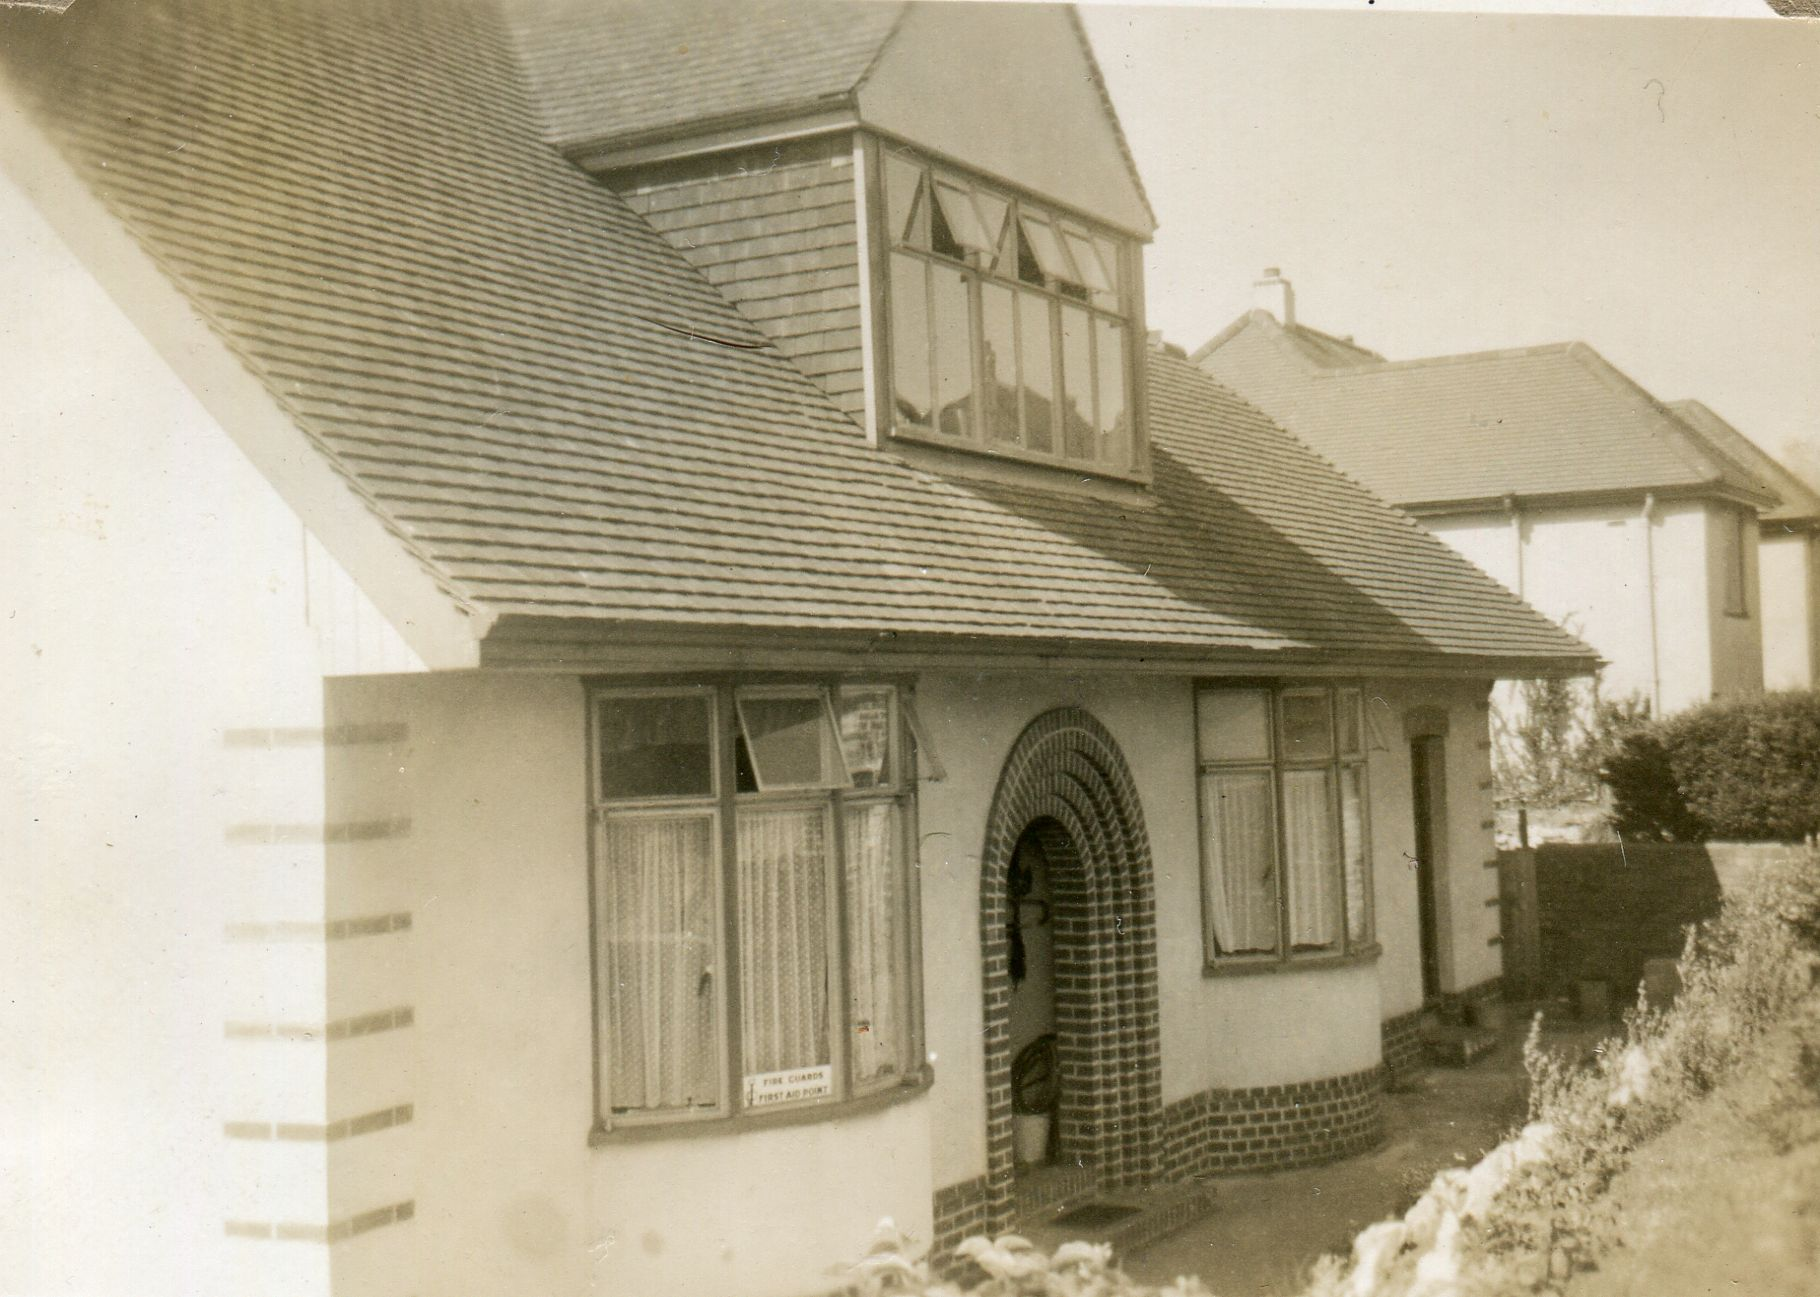 Trevabyn, Barcombe Heights, Paignton, Devon